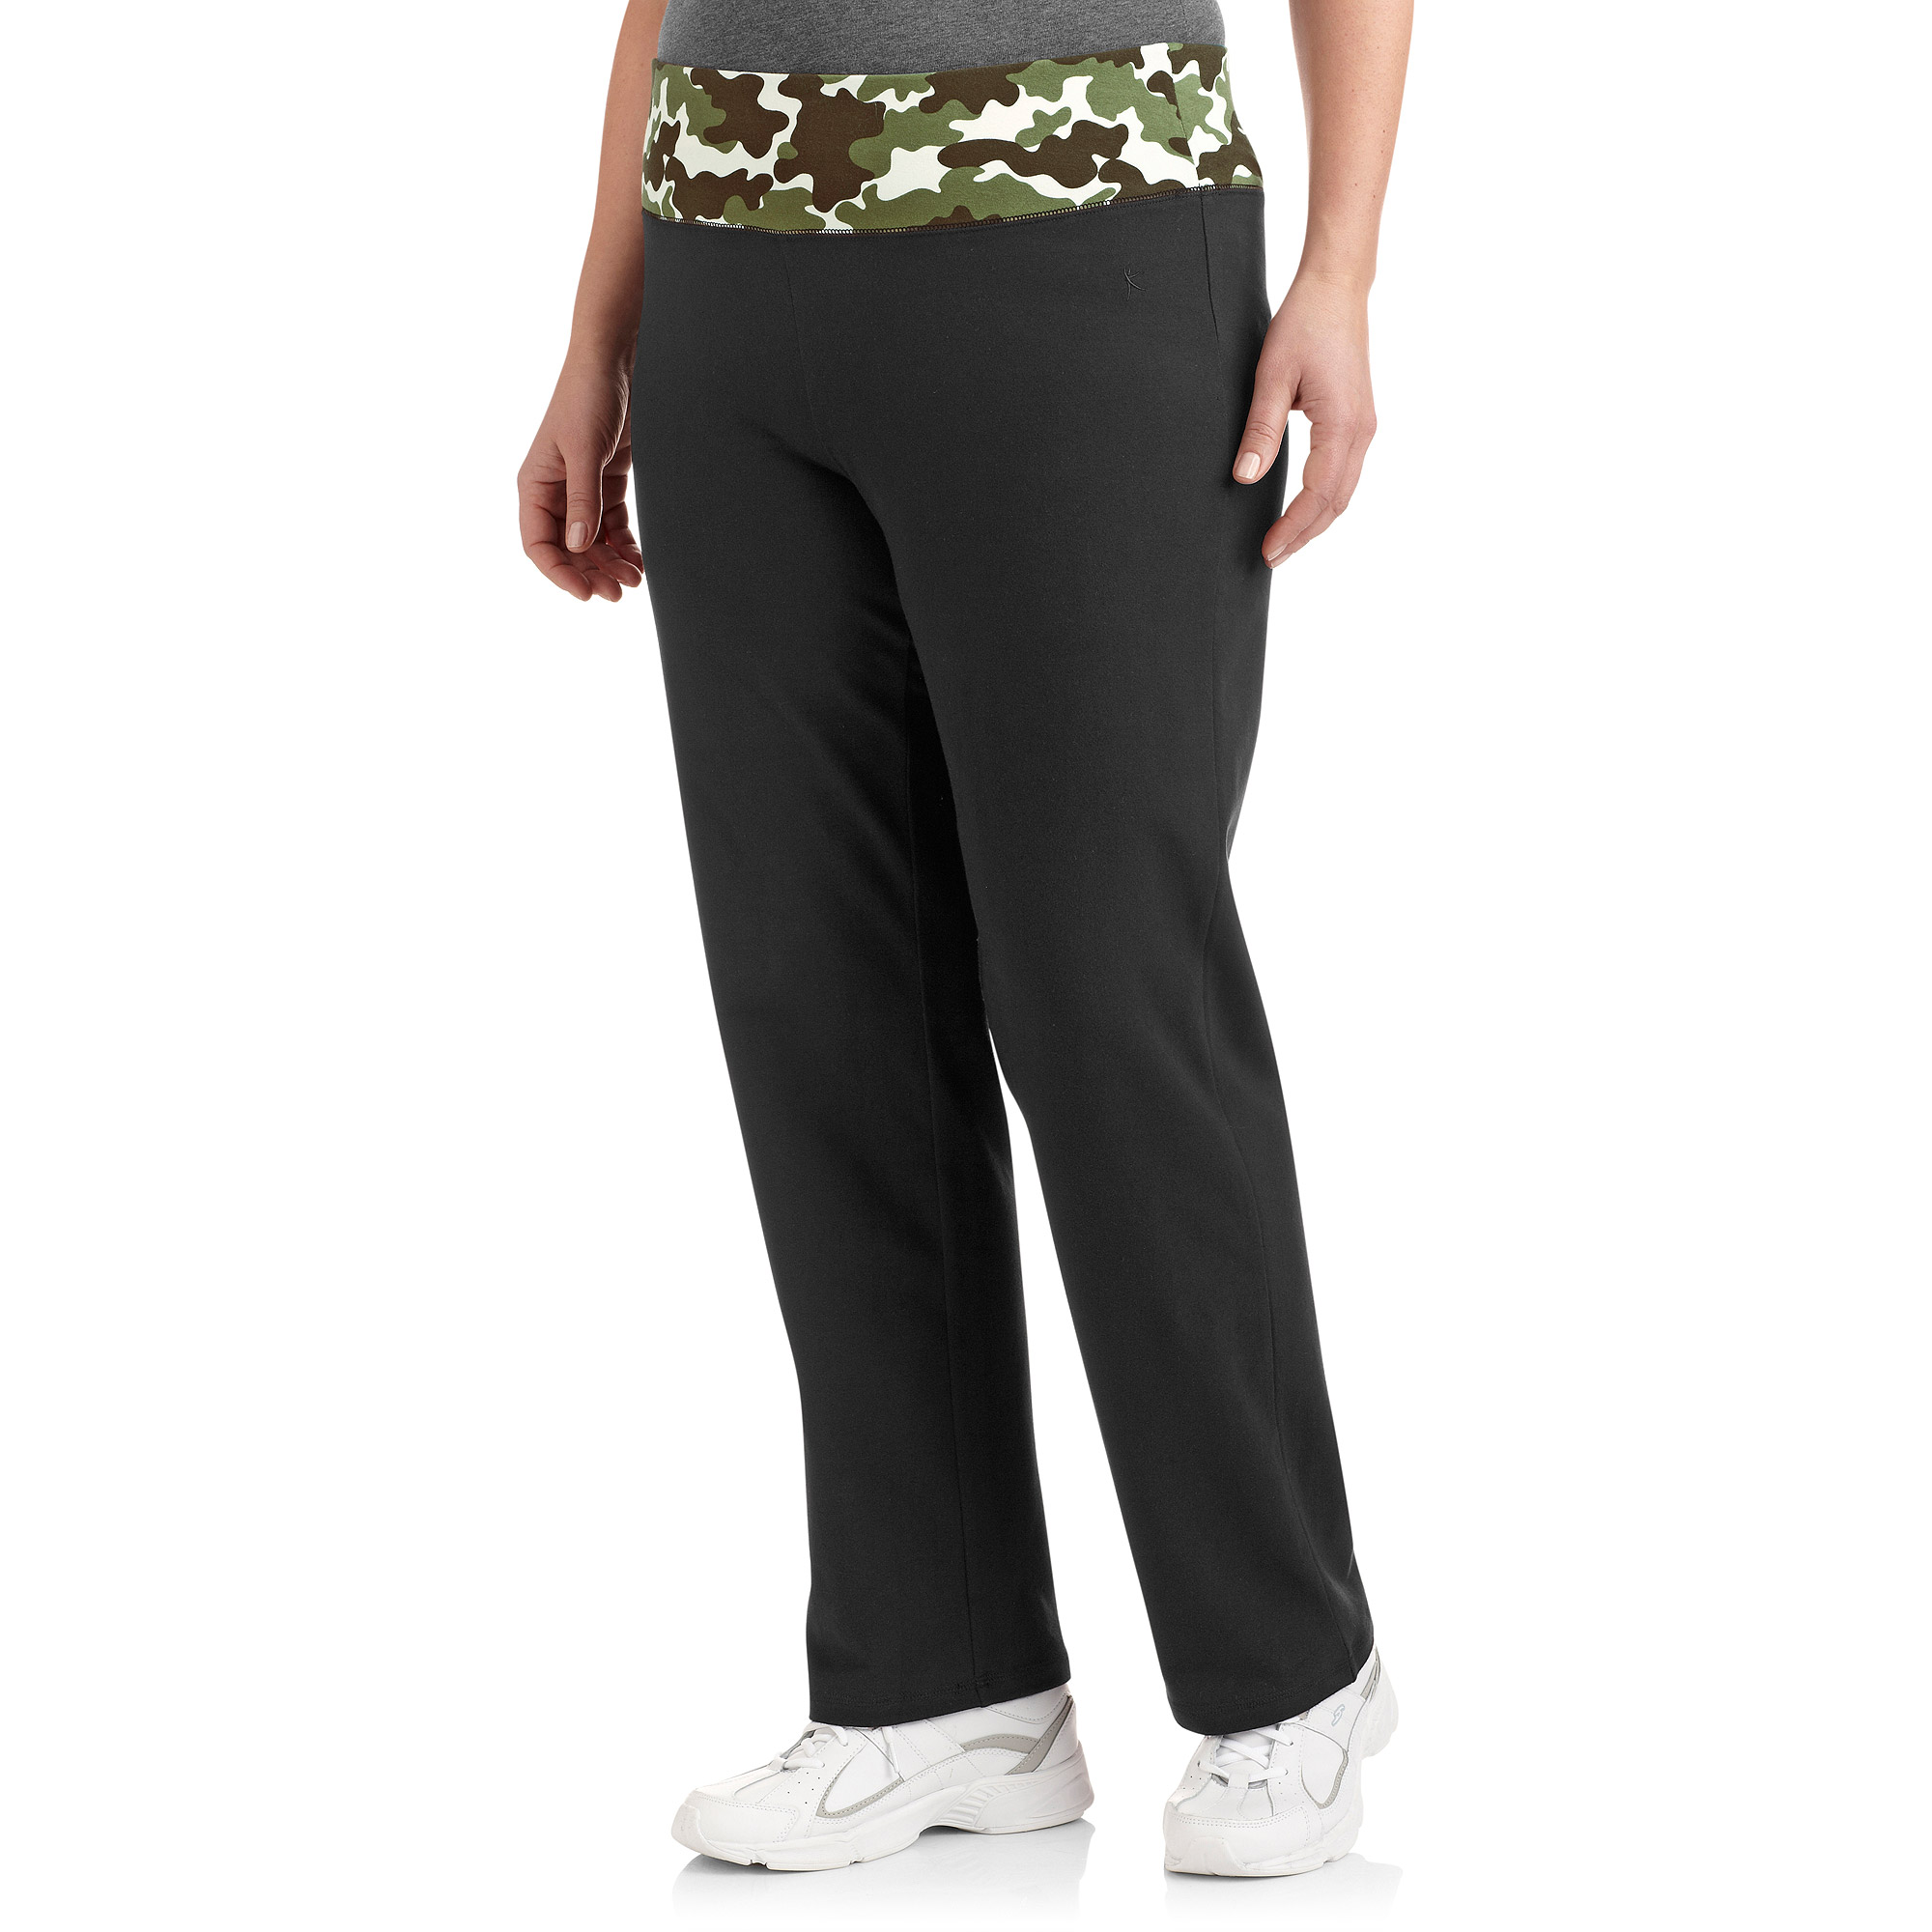 Danskin Now Women's Plus-Size Yoga Pant with Printed Waistband, Petite